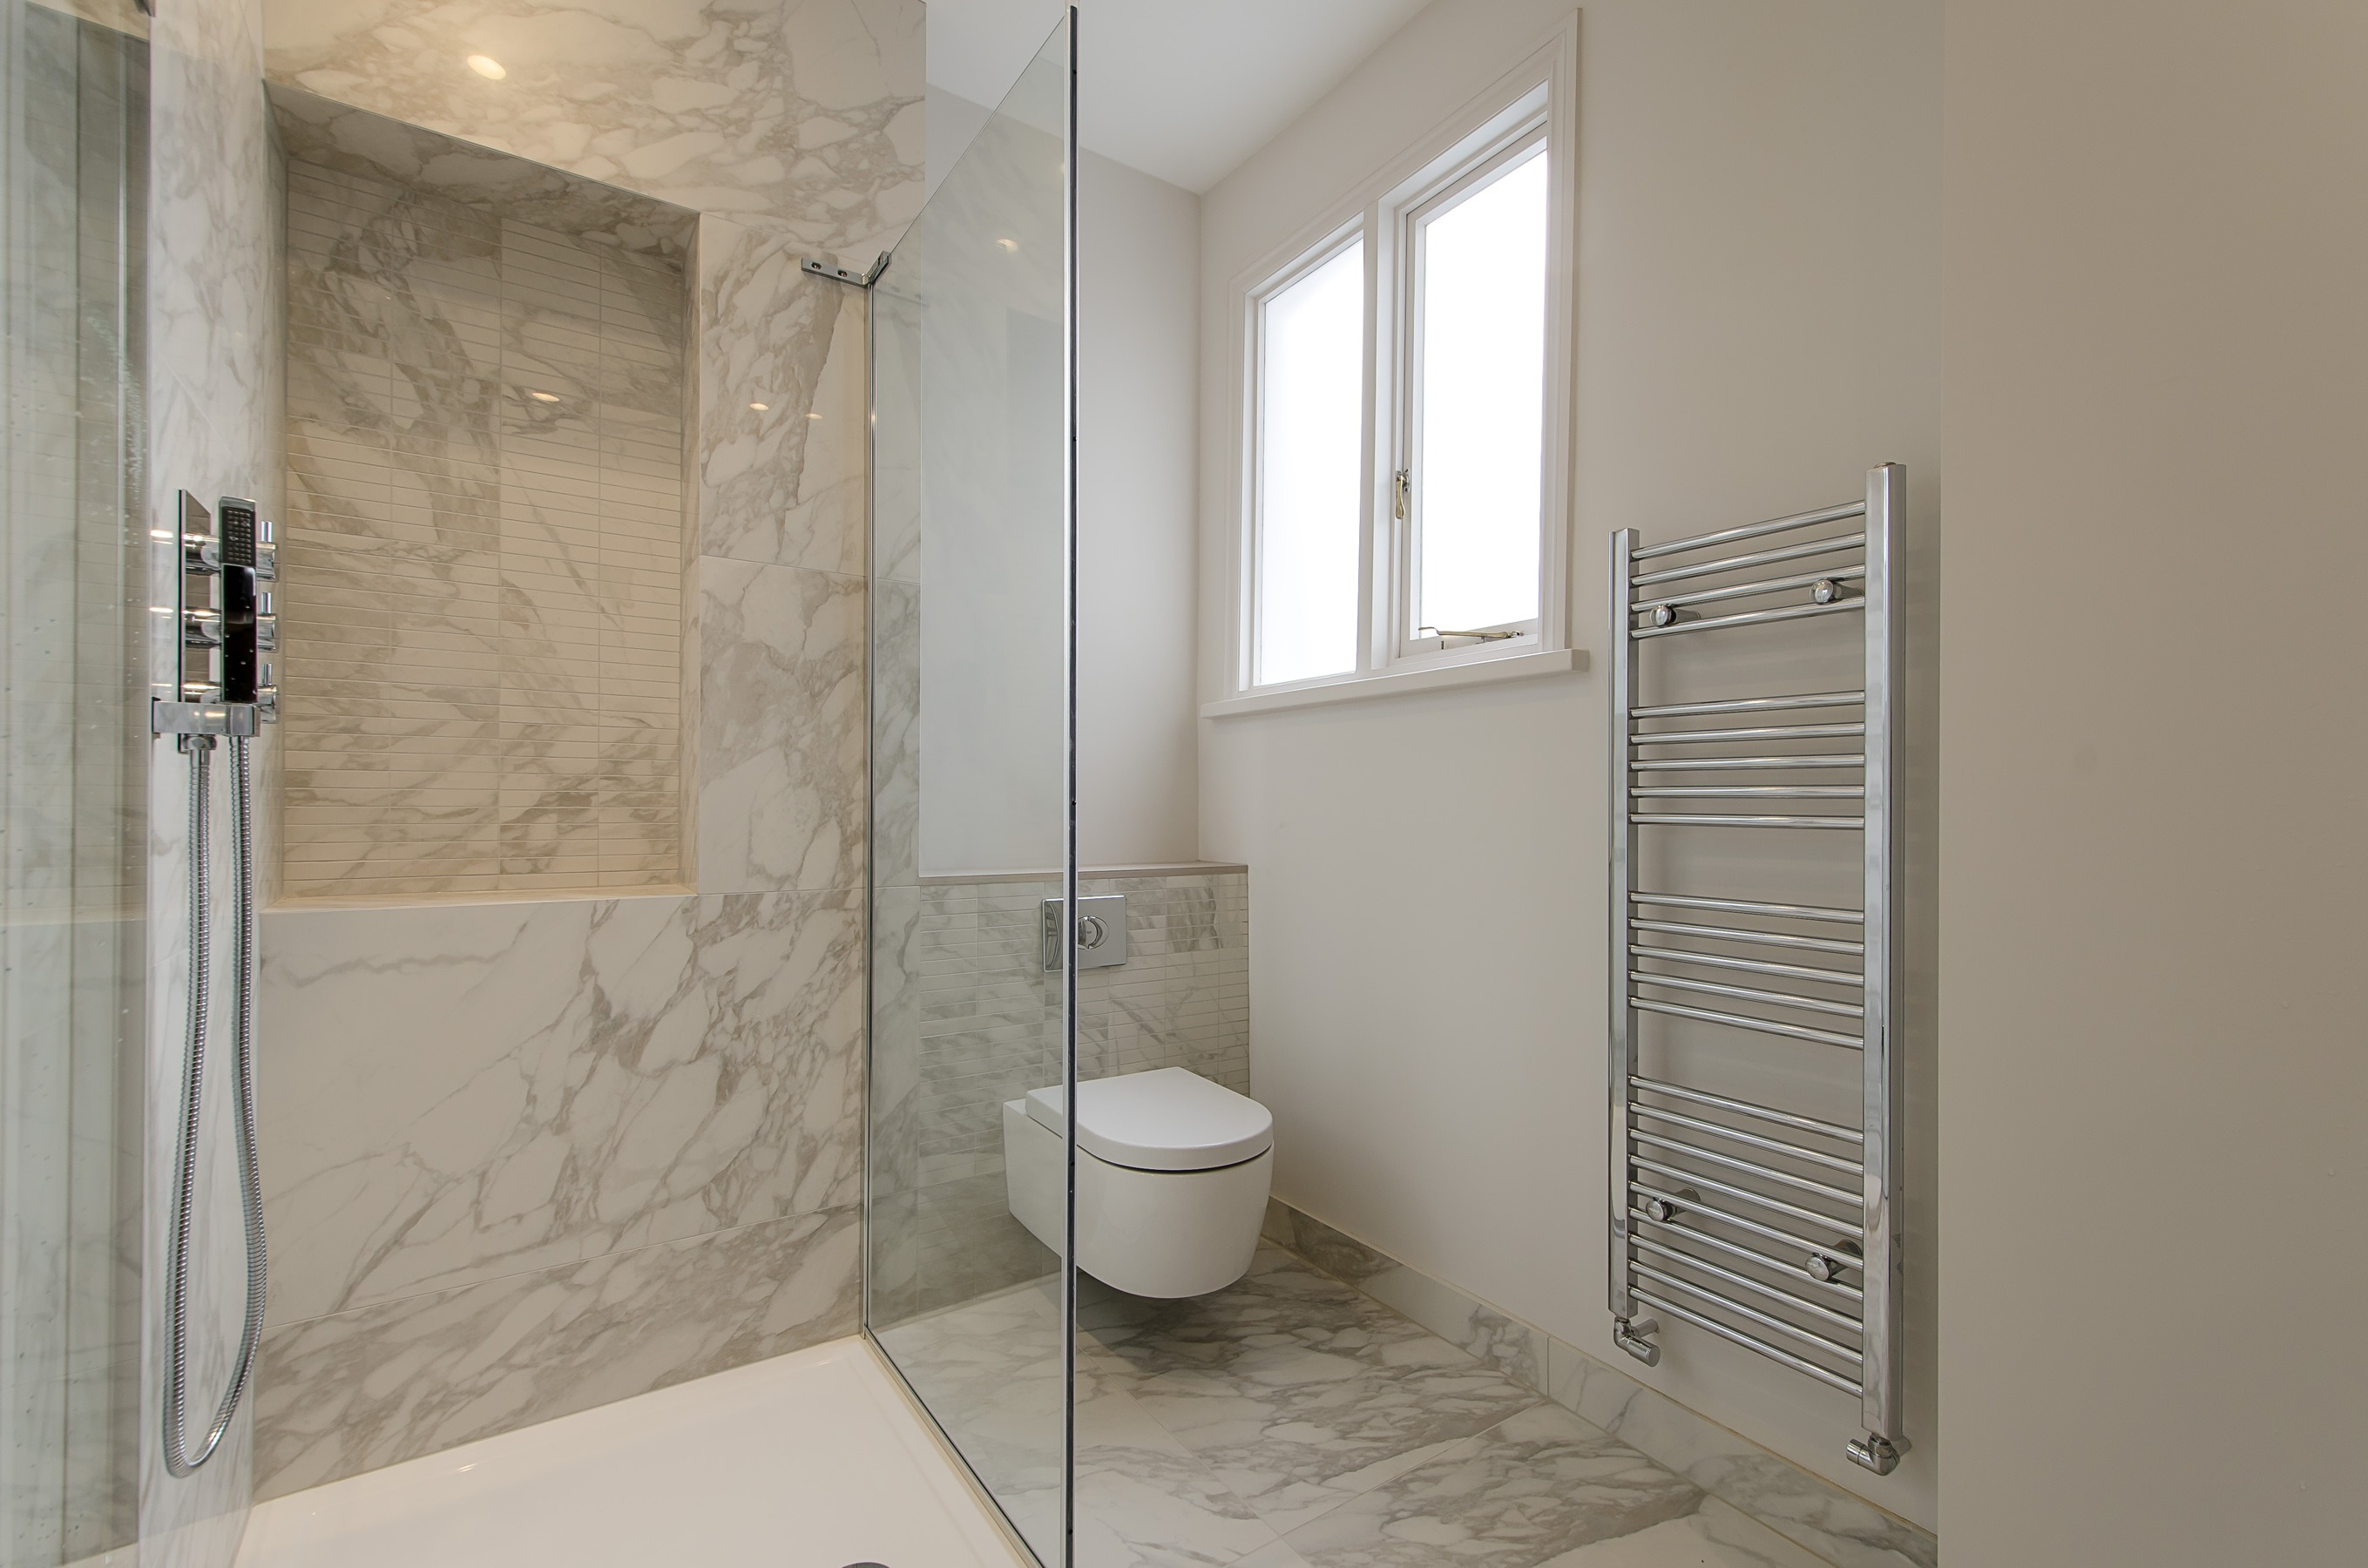 Marble finish bathroom